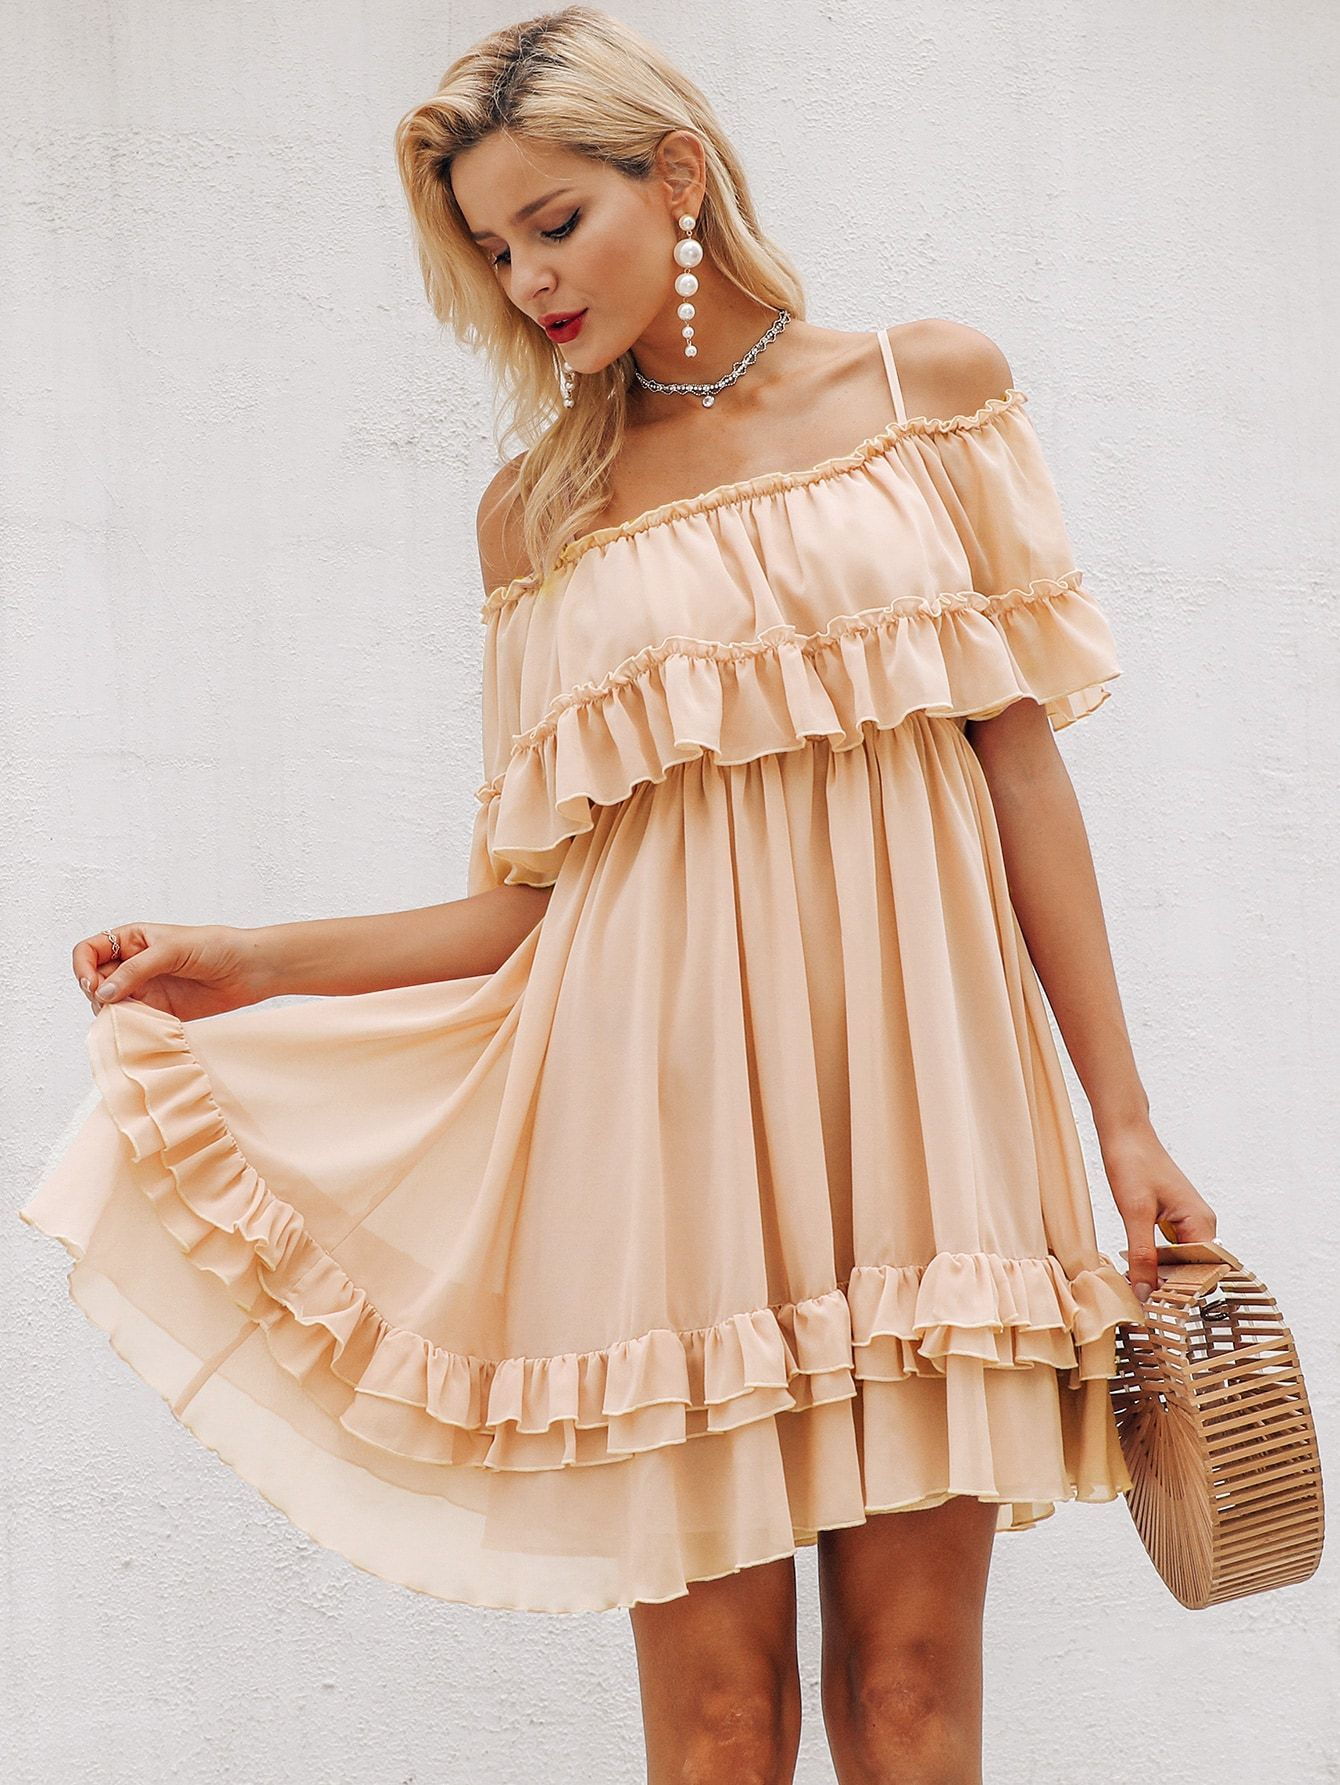 Simplee Cold Shoulder Layered Ruffle Dress Layered Ruffle Dress Chiffon Summer Dress Mini Dress [ 1785 x 1340 Pixel ]